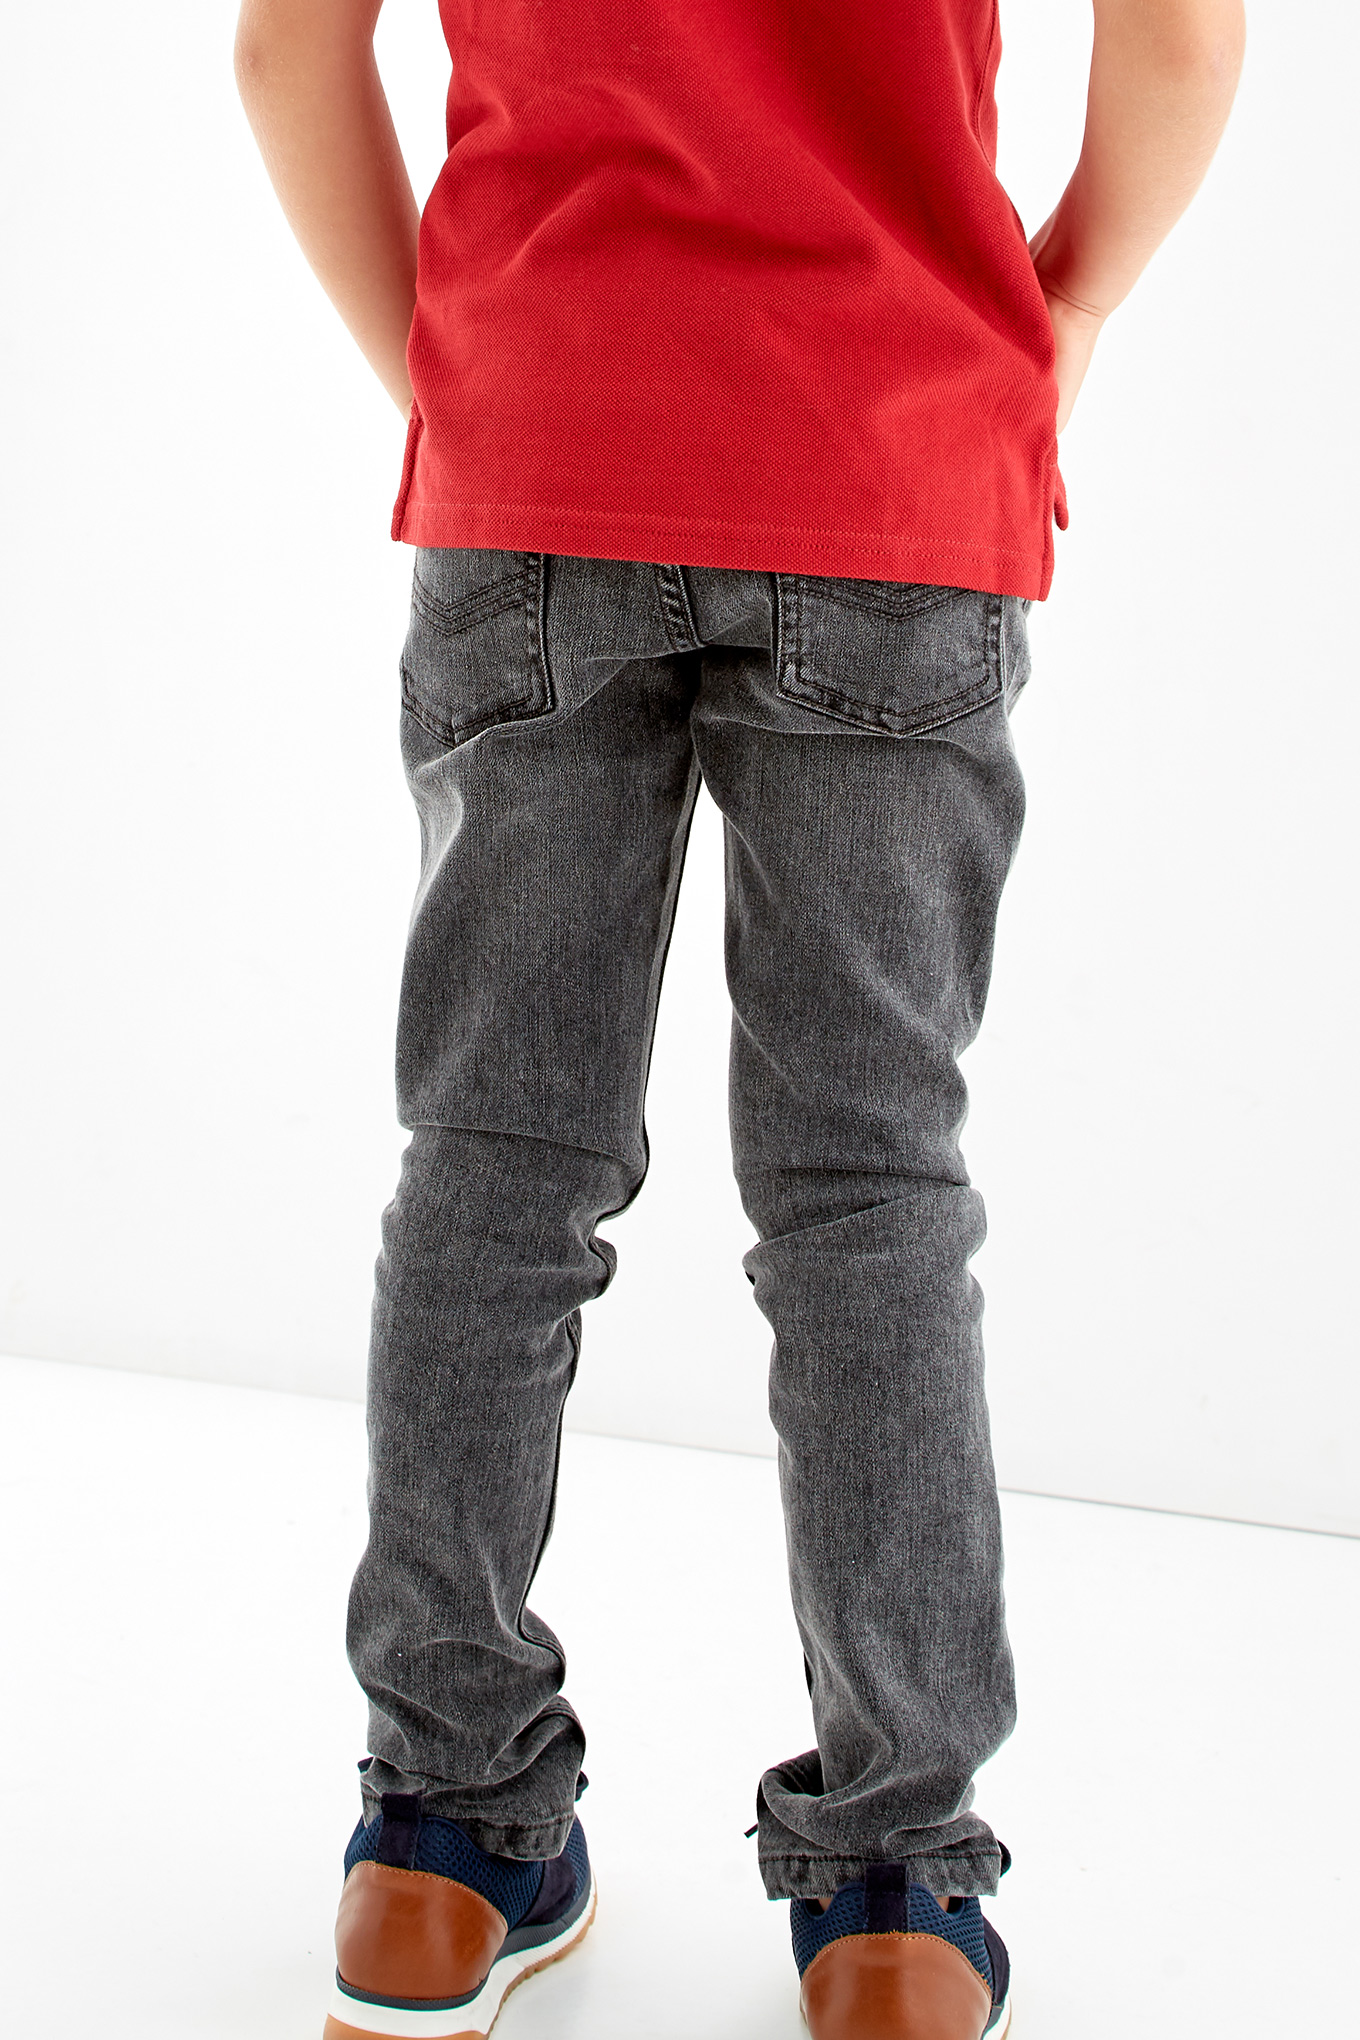 Jeans Medium Grey Sport Boy